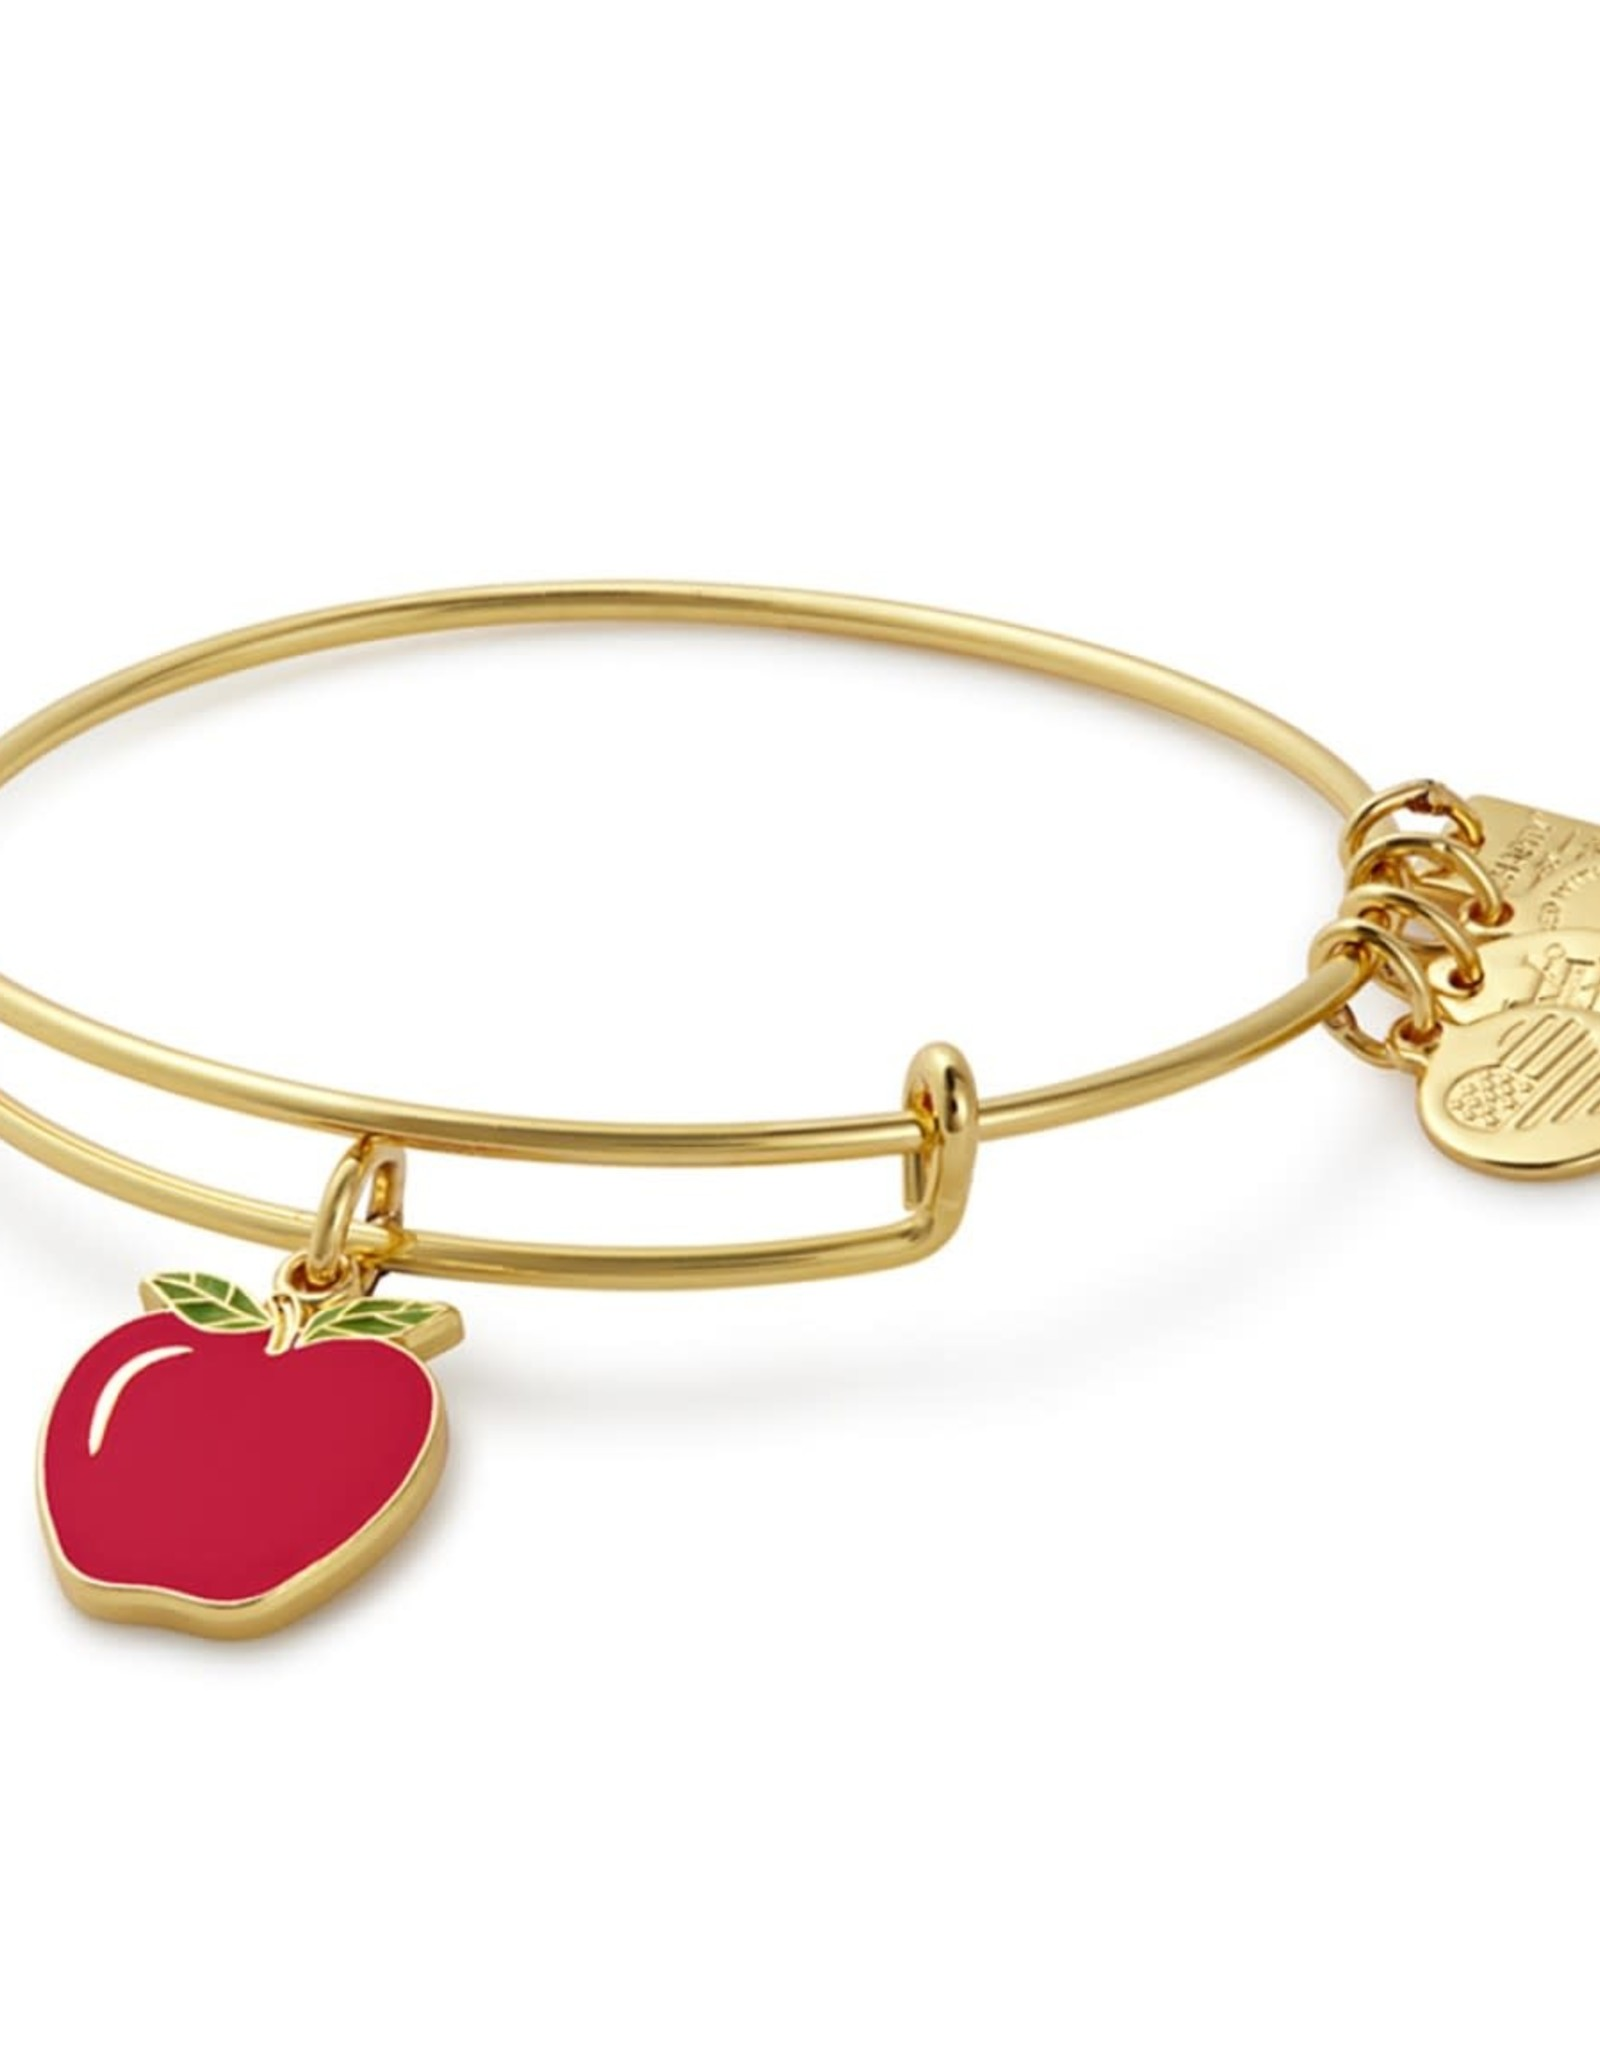 Alex and Ani Apple, Charity by Design Shiny Gold